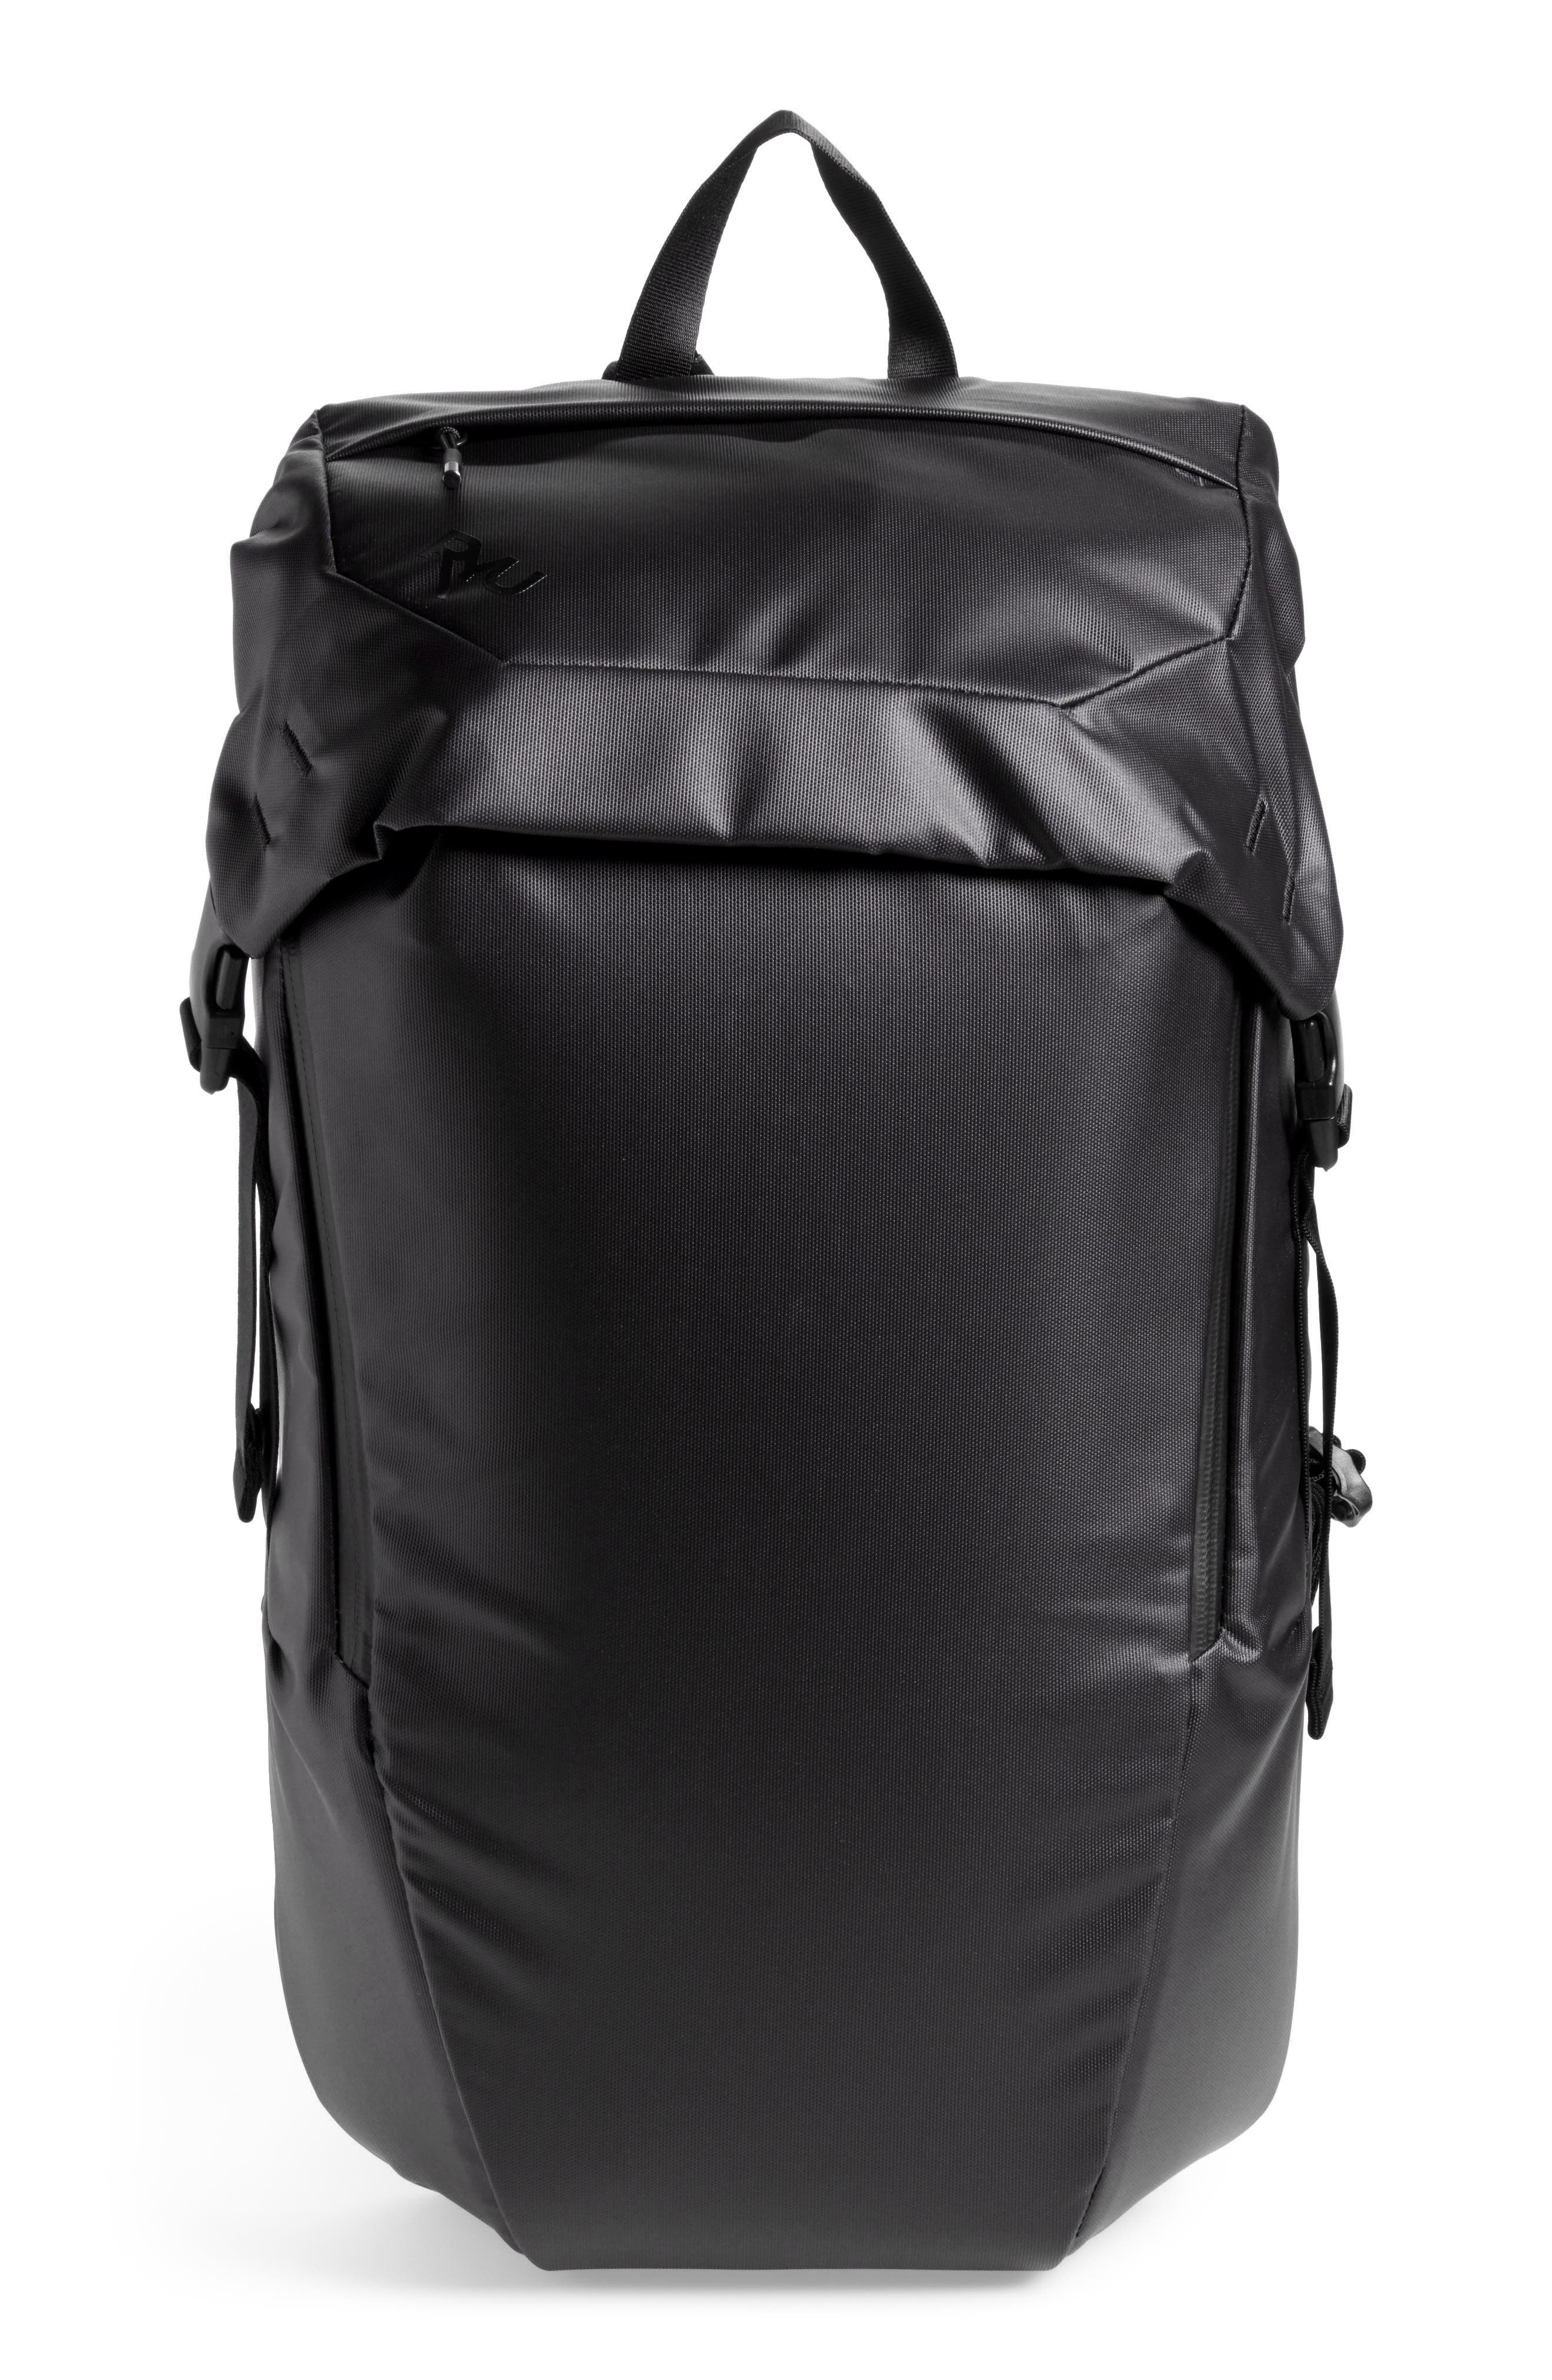 RYU Quick Pack Backpack (18 Liter)